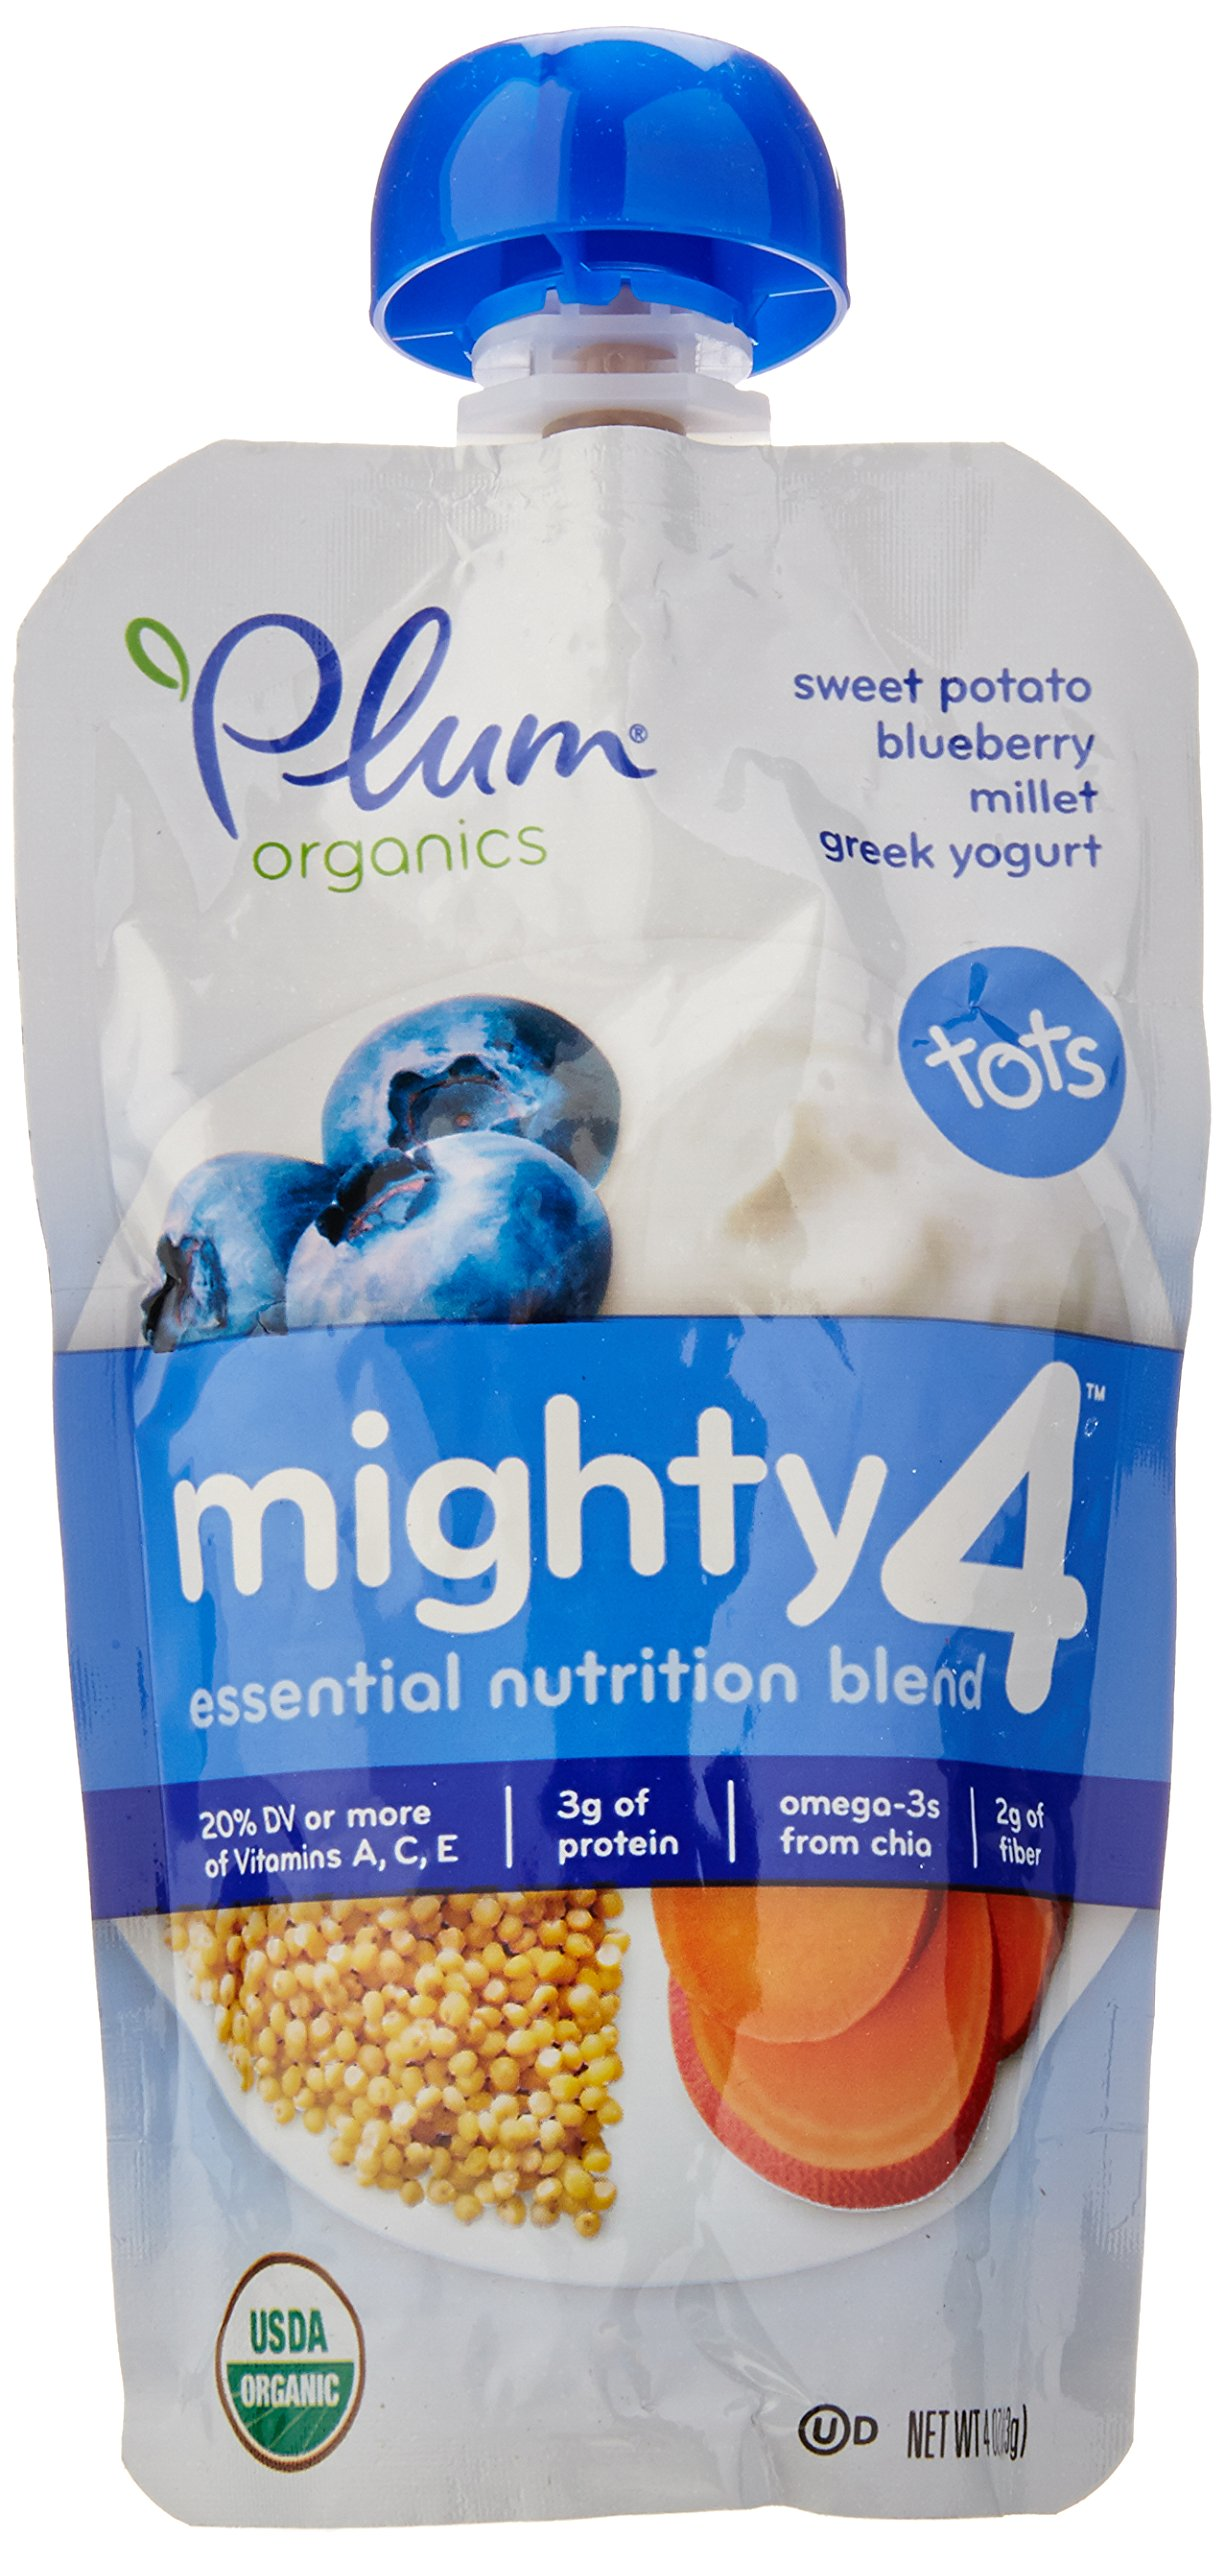 Plum Organics Tots Mighty 4 Purees - Sweet Potato, Carrot, Blueberry, Apple, Greek Yogurt, Millet & Oat - 4 oz - 6 pk by Plum Organics